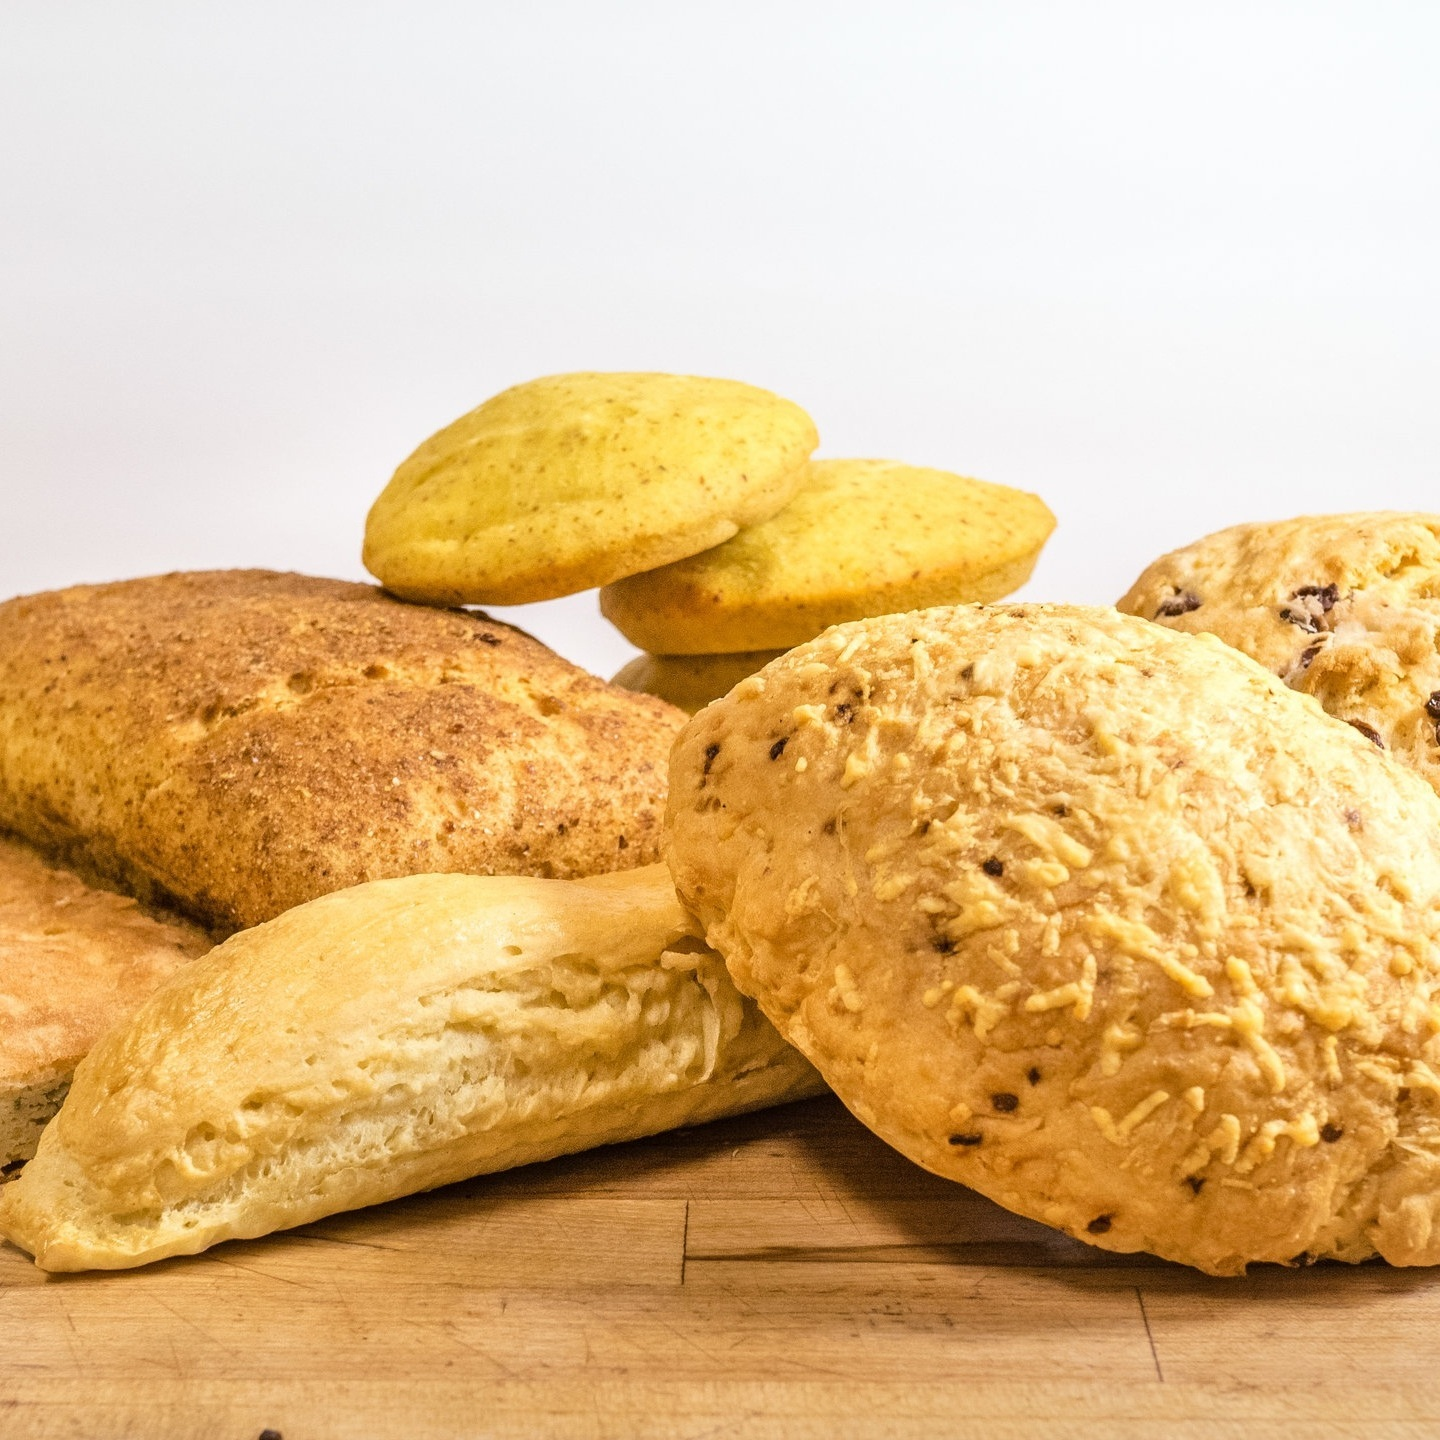 Click to find a listing of all our artisan breads and care instructions.